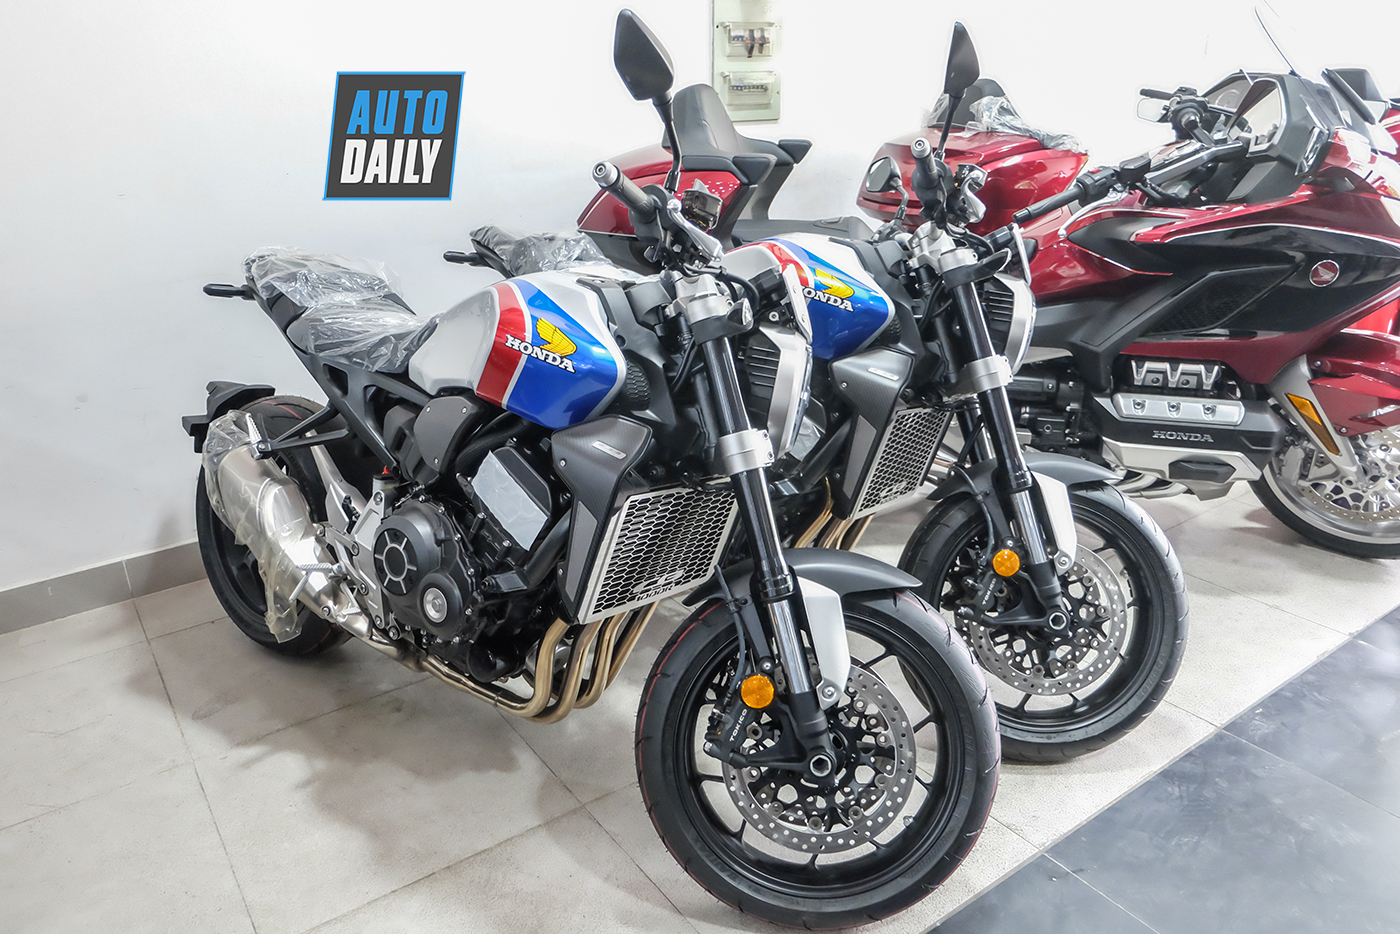 honda-cb1000r-plus-limited-edition-2019-8.jpg